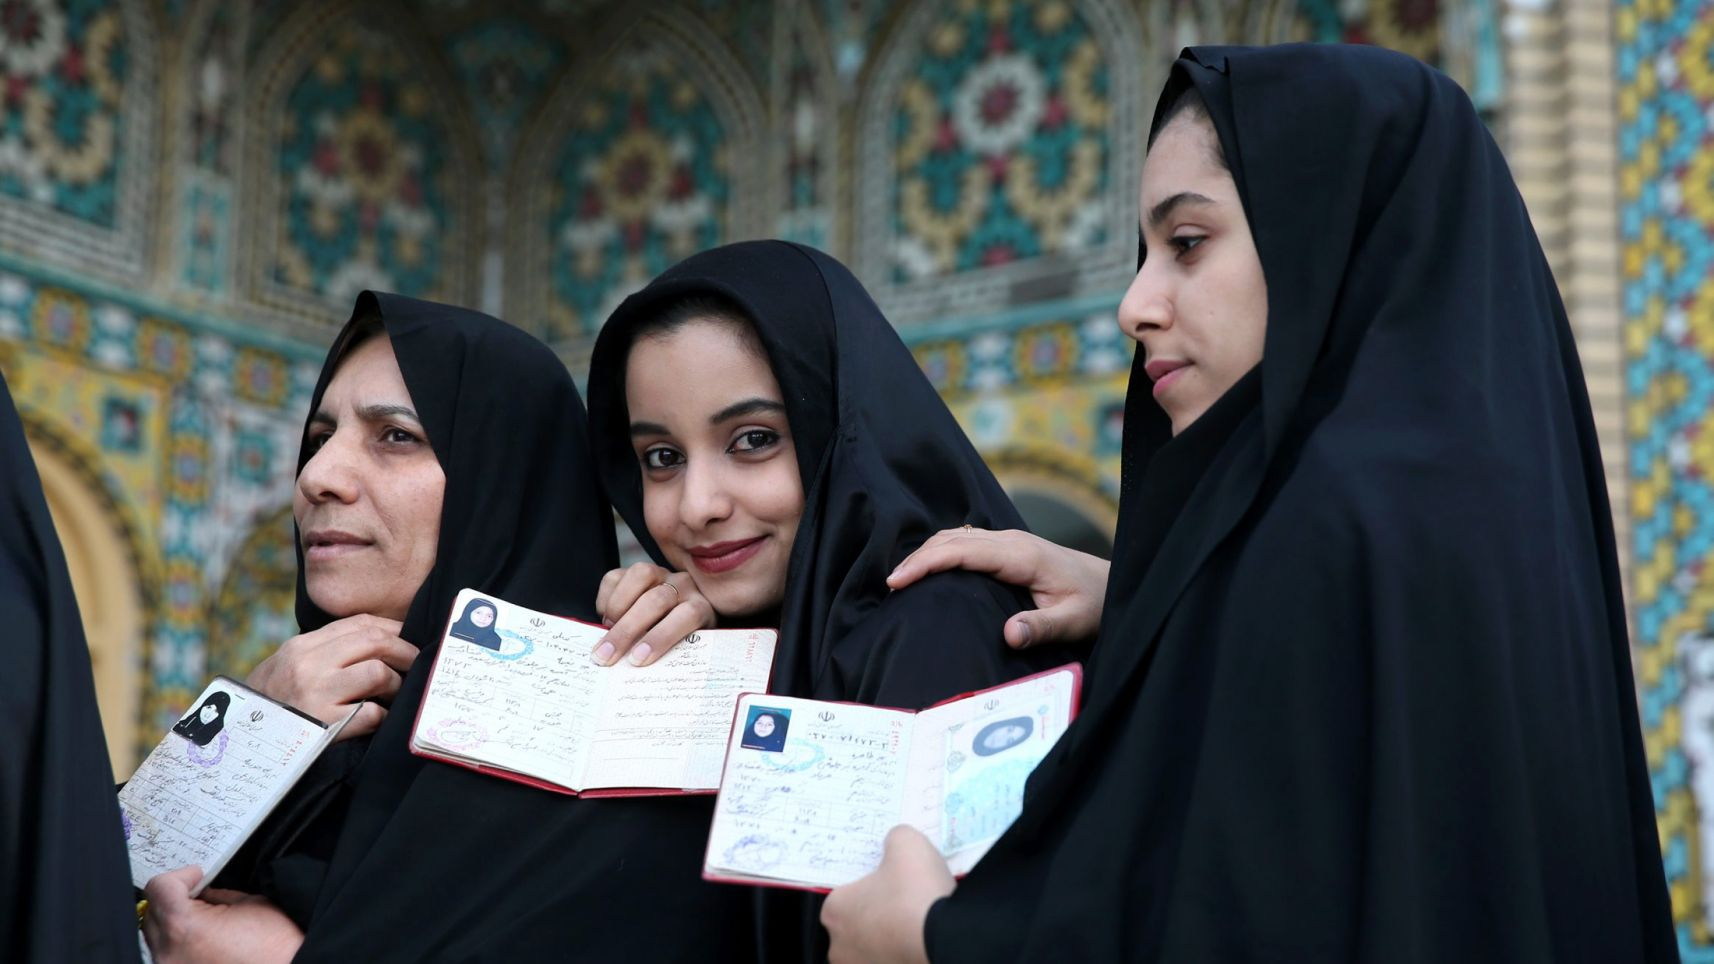 Reformists Set to Make Gains in Iranian Election, Reformists Set to Make Gains in Iranian Election